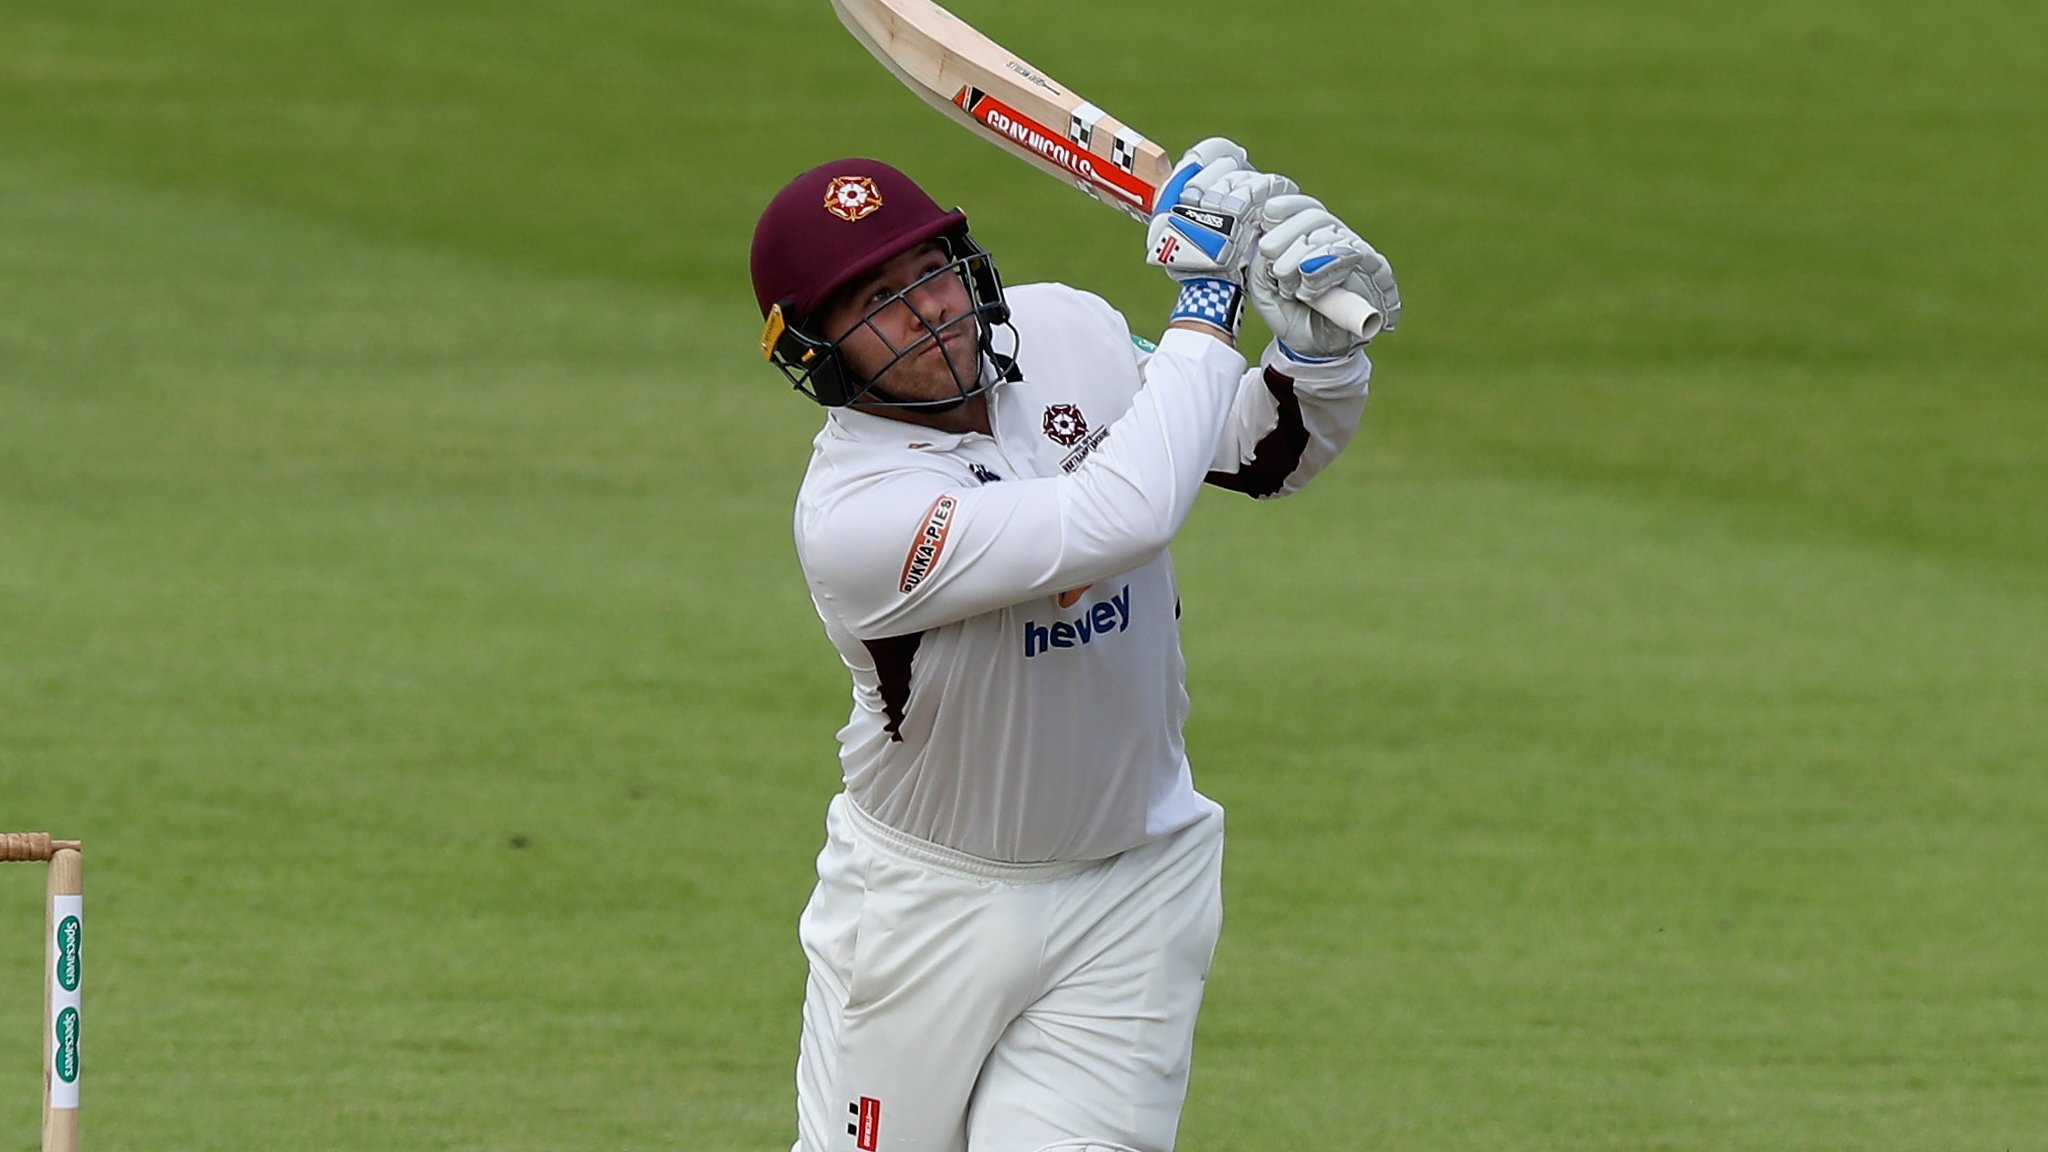 County Championship: Northants beat Sussex by four wickets inside two days